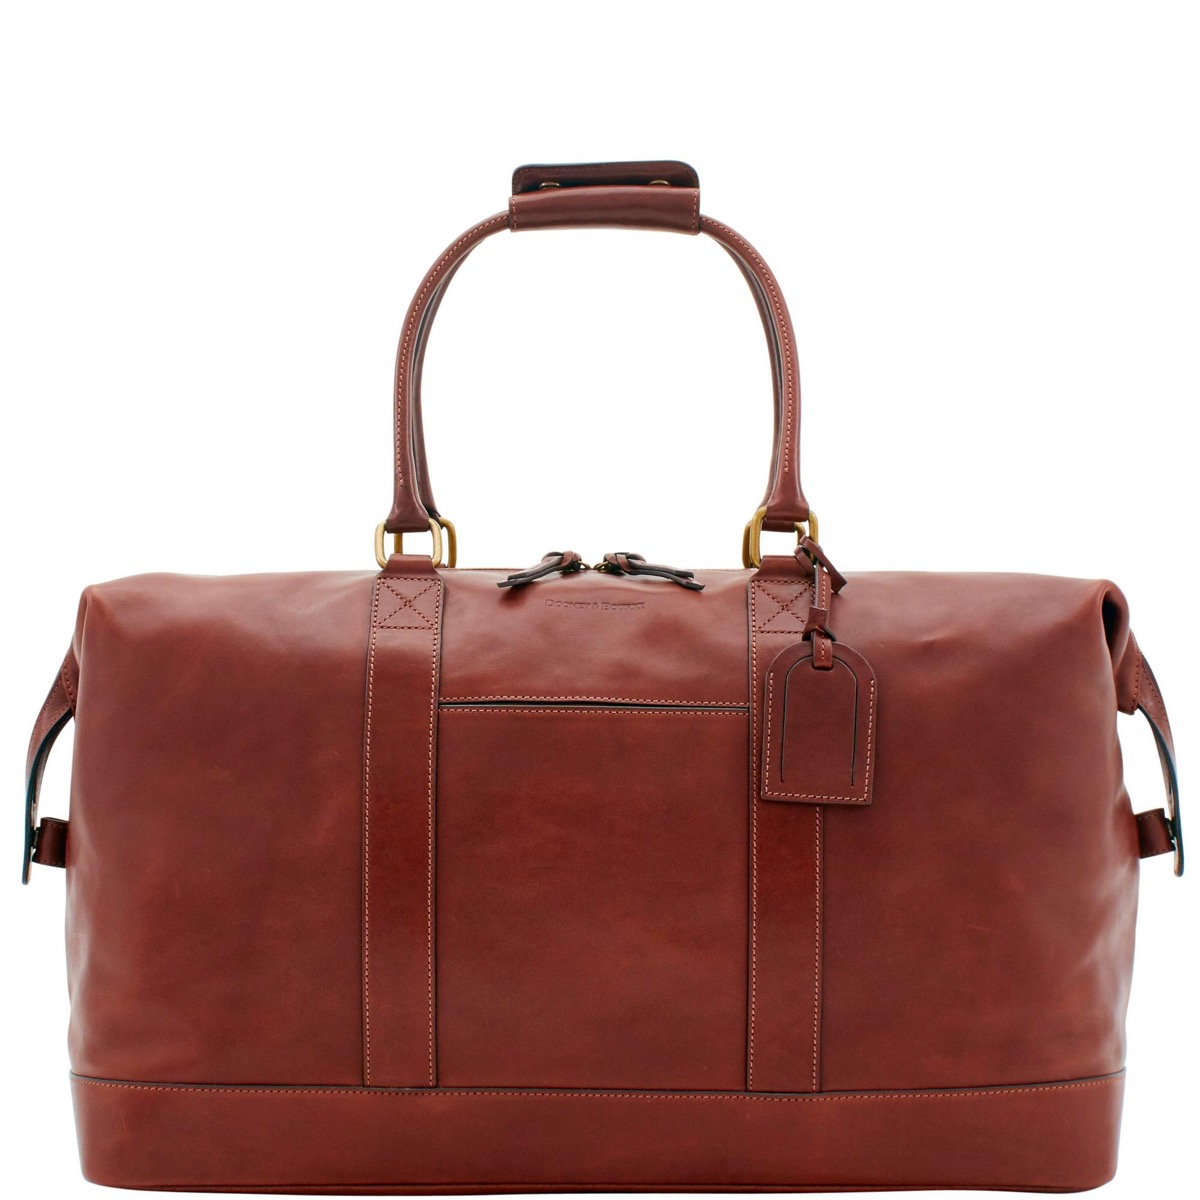 reddish brown leather bag with top handles